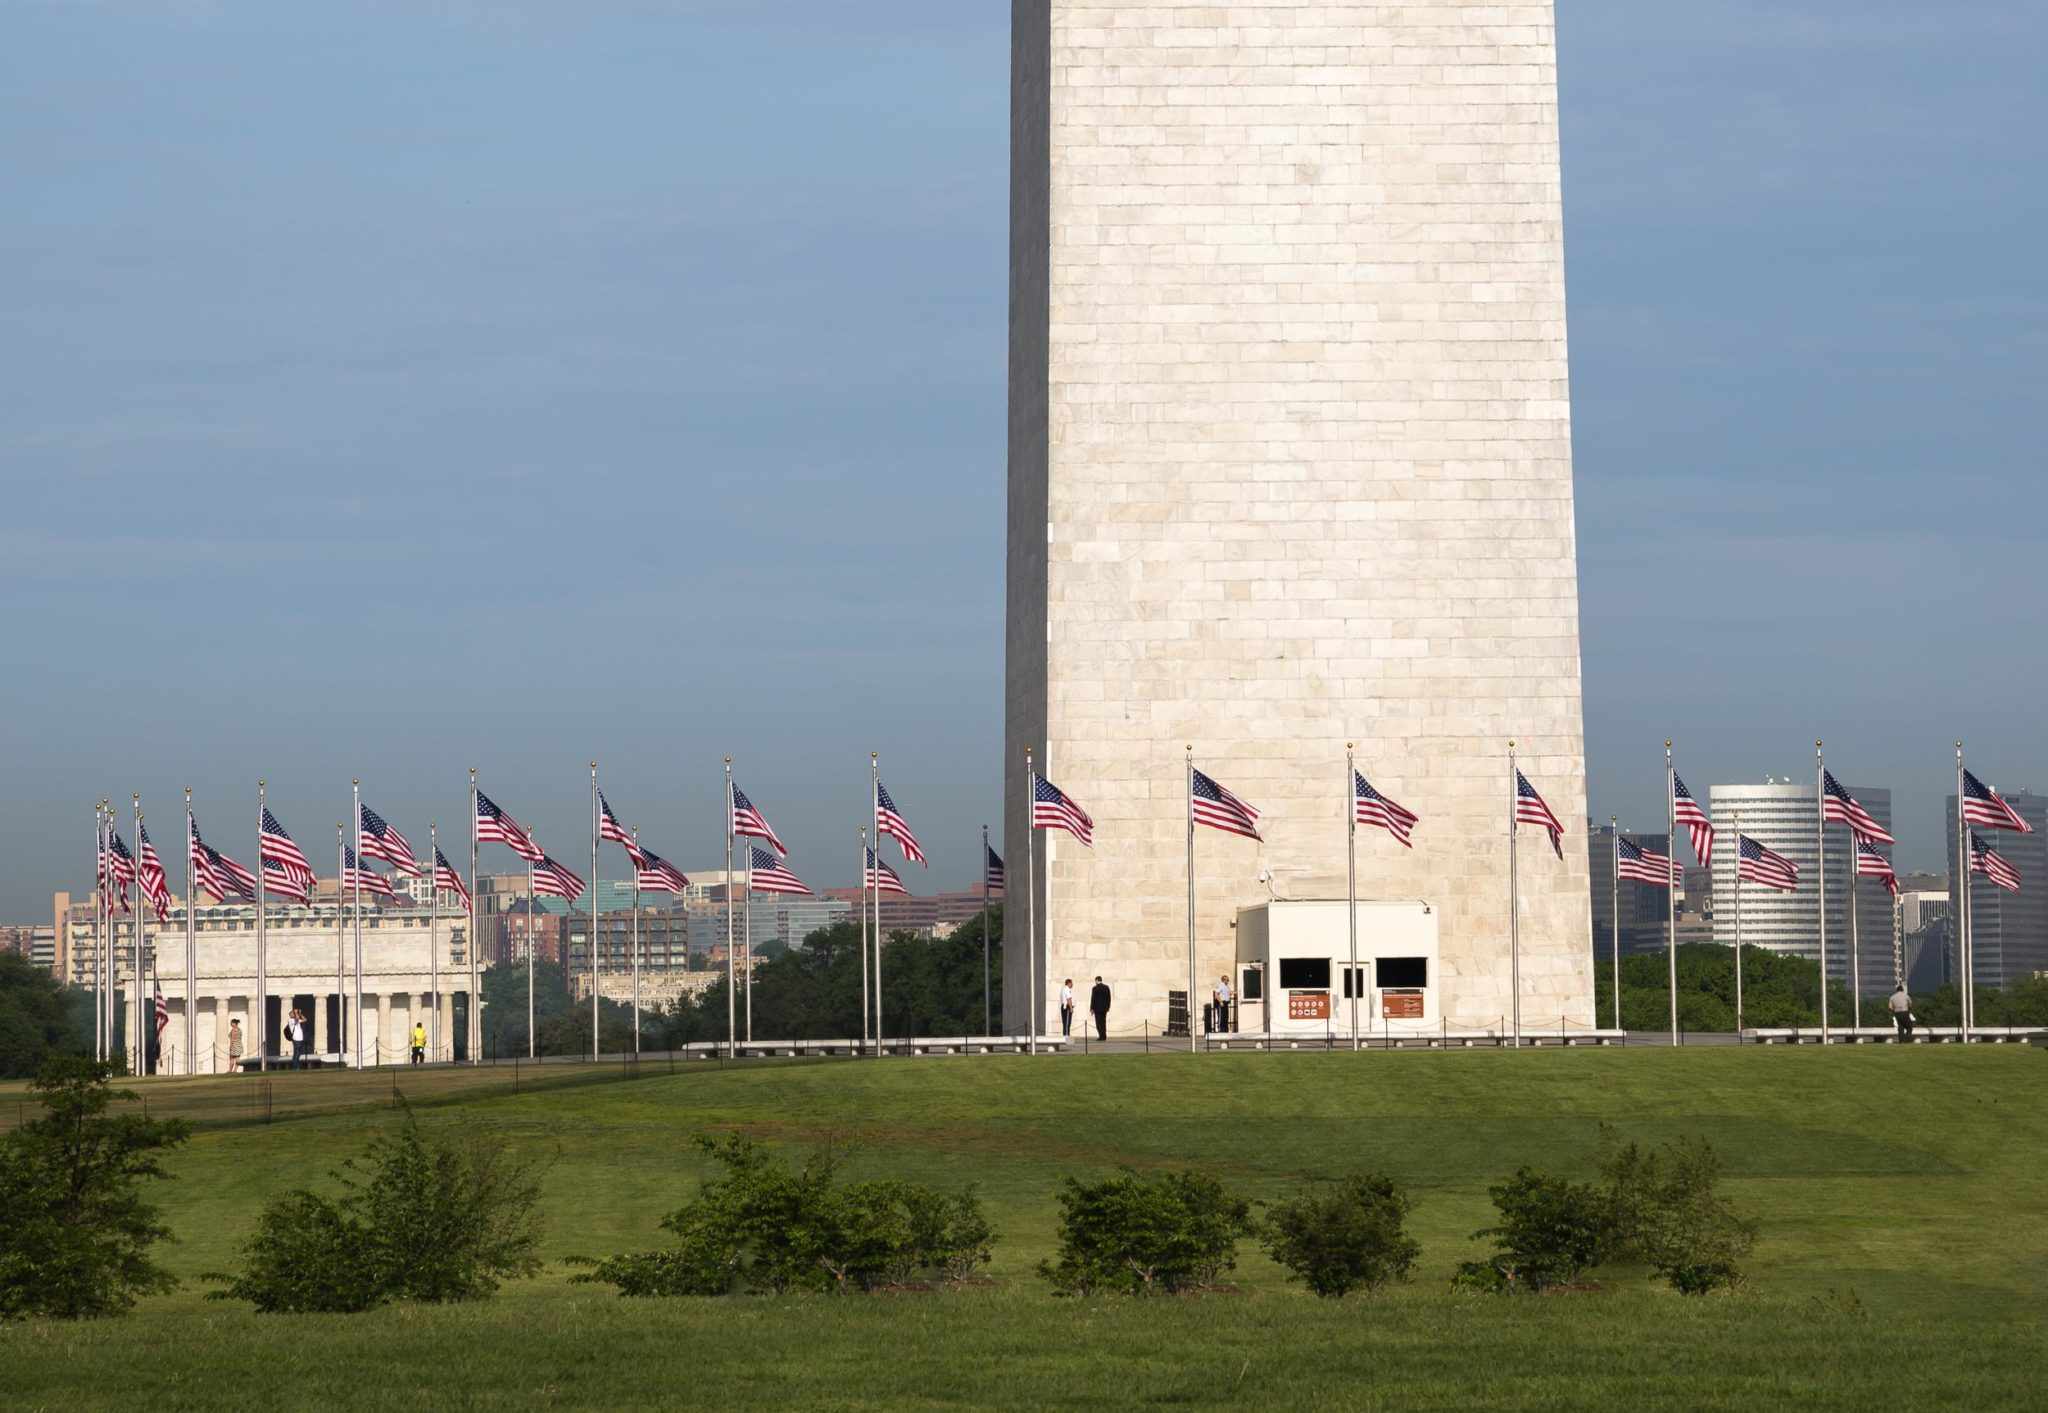 Washington Monument Reopening